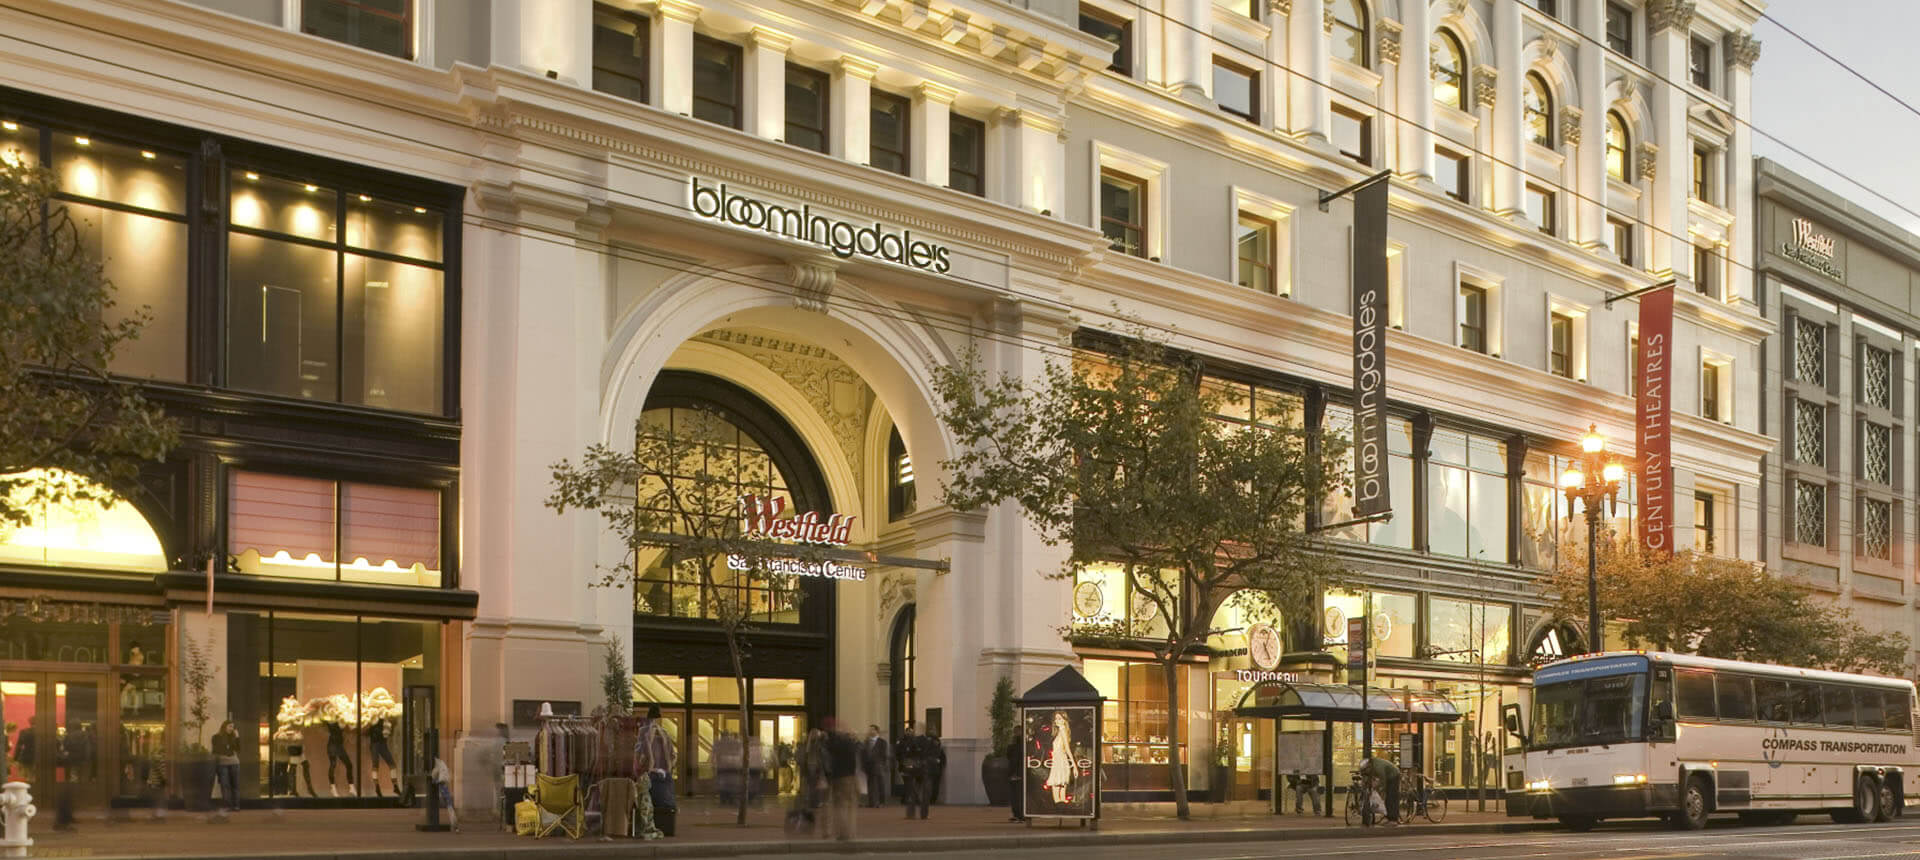 San Francisco Outlets. Our San Francisco outlet mall guide has all the outlet malls in and around San Francisco, helping you locate the most convenient outlet shopping according to .